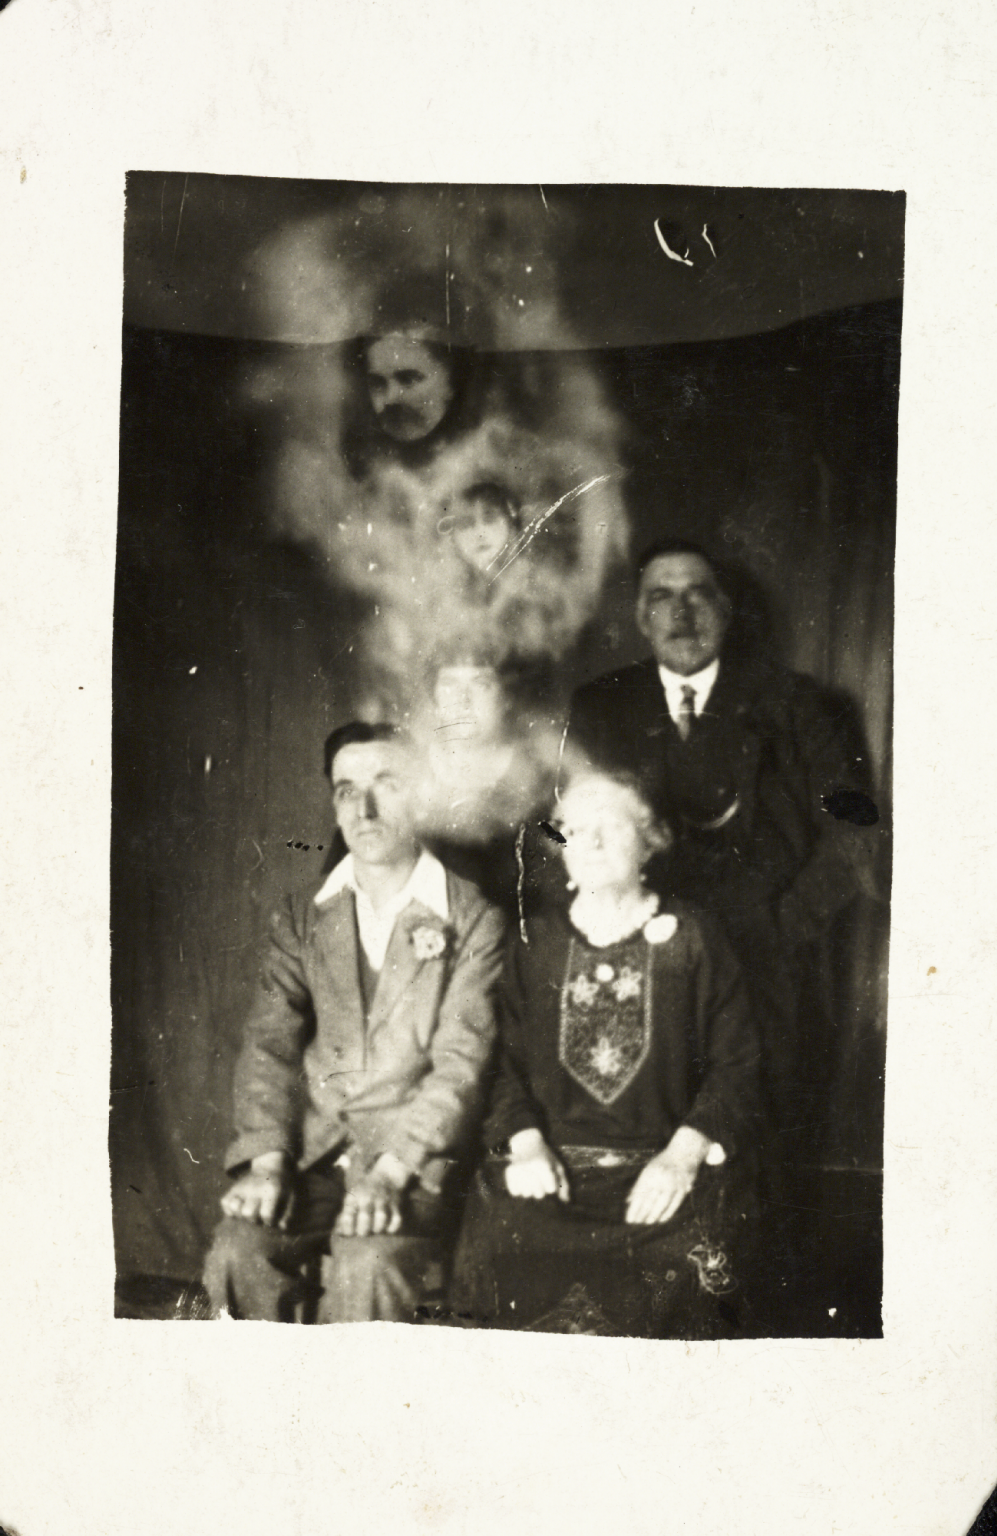 Ghost photograph #1.png William Hope.png